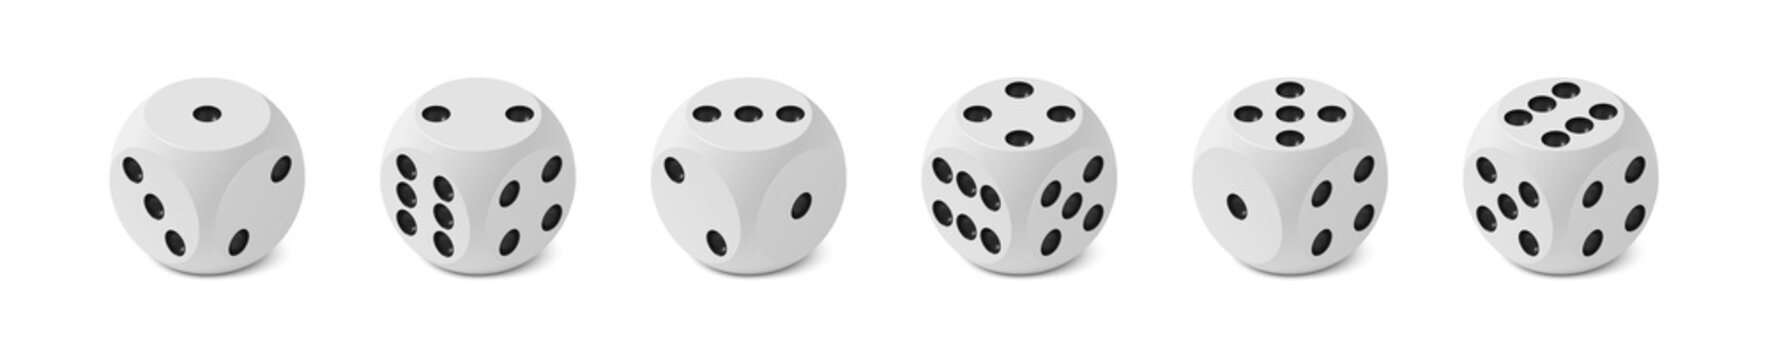 Set of six realistic isometric game dices with rounded edge and angle